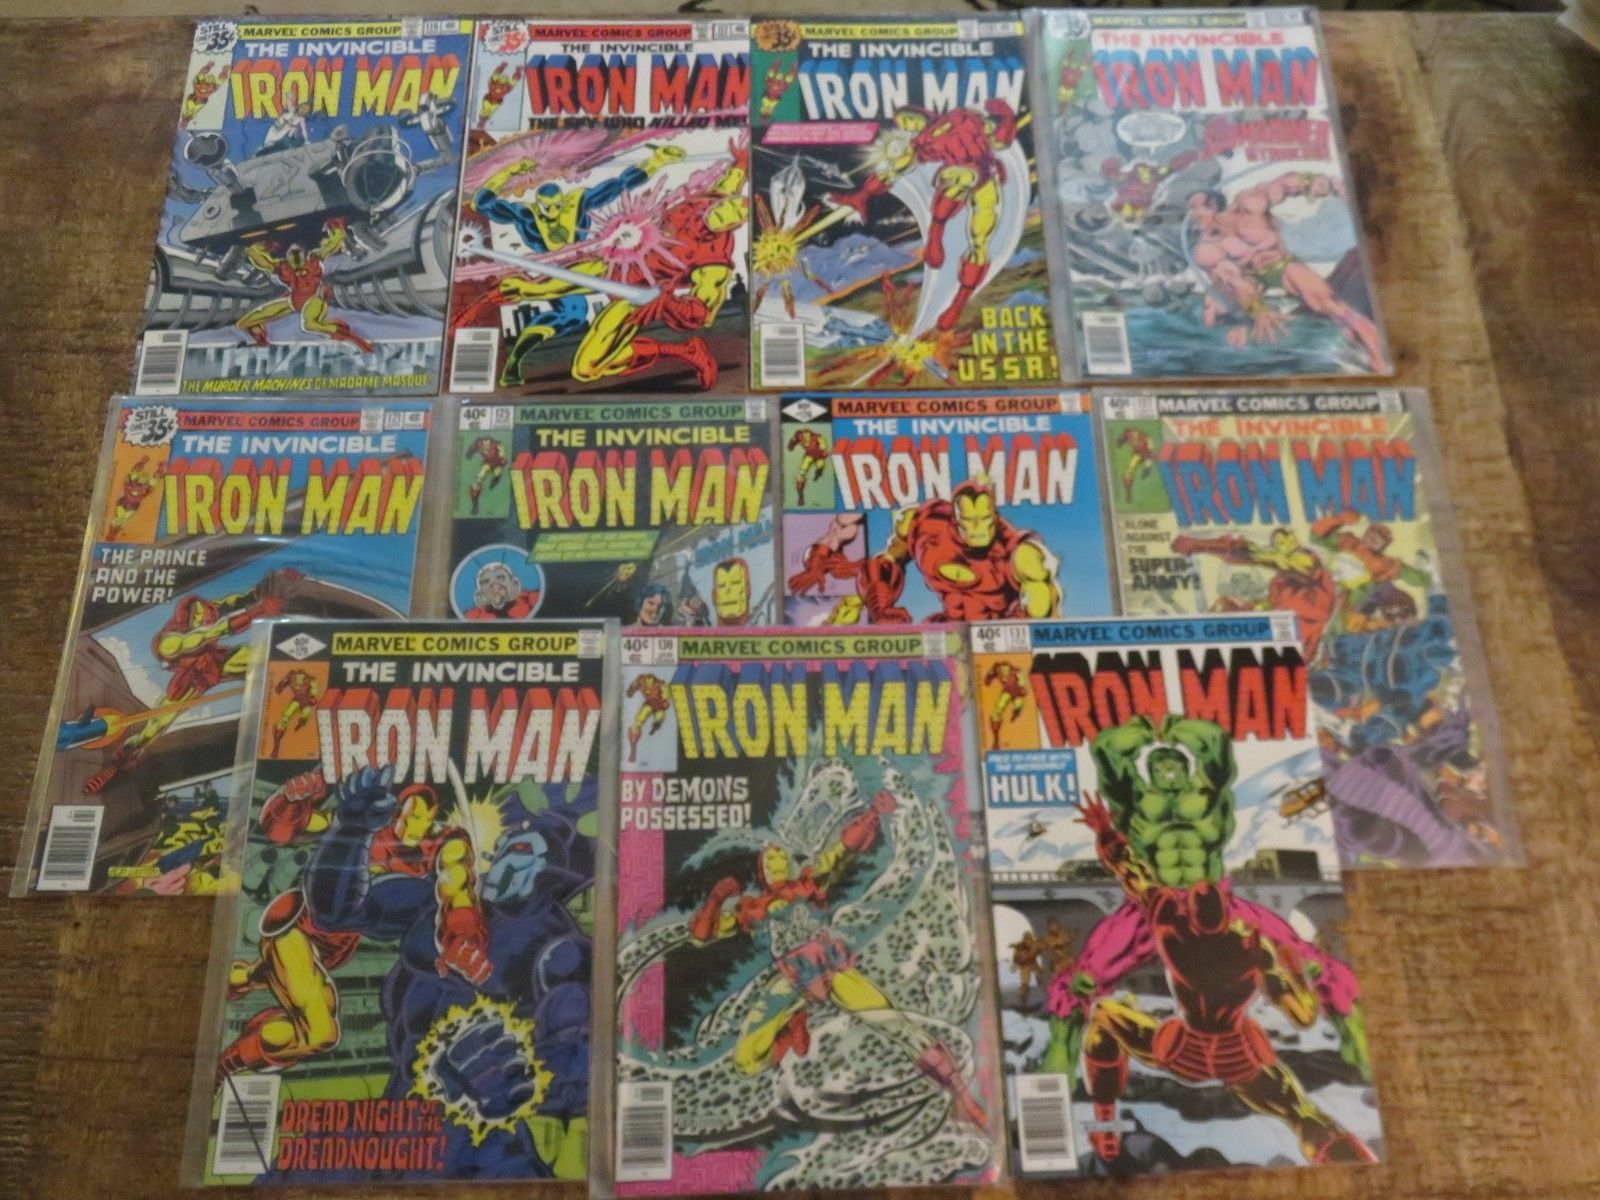 Iron Man 116 117 119 120 121 125 126 127 129 130 131 all NM 9.0 condition